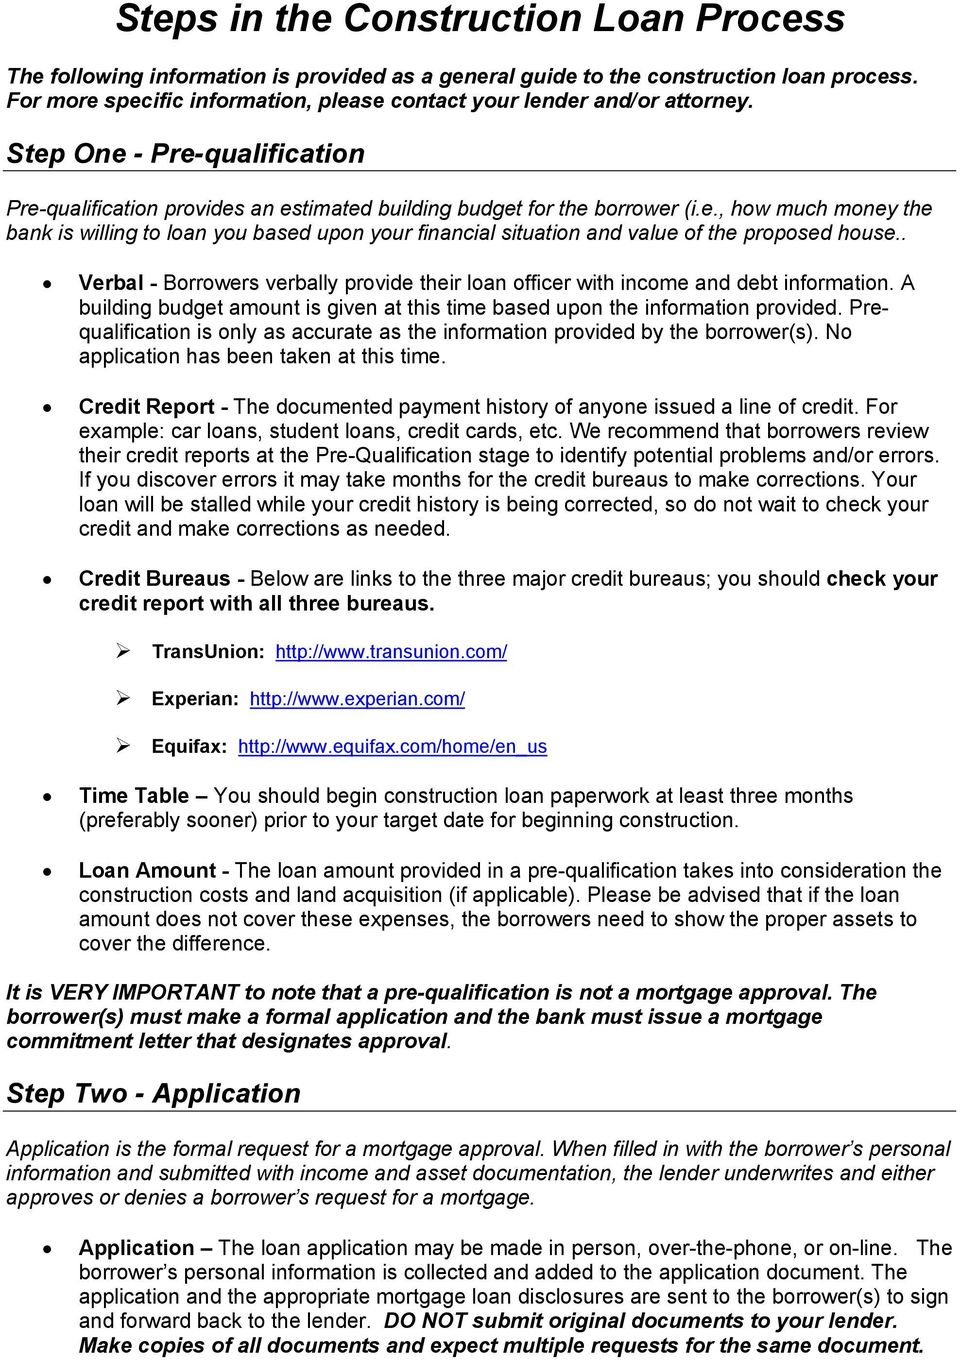 Steps in the construction loan process pdf verbal borrowers verbally provide their loan officer with income and debt information a altavistaventures Images